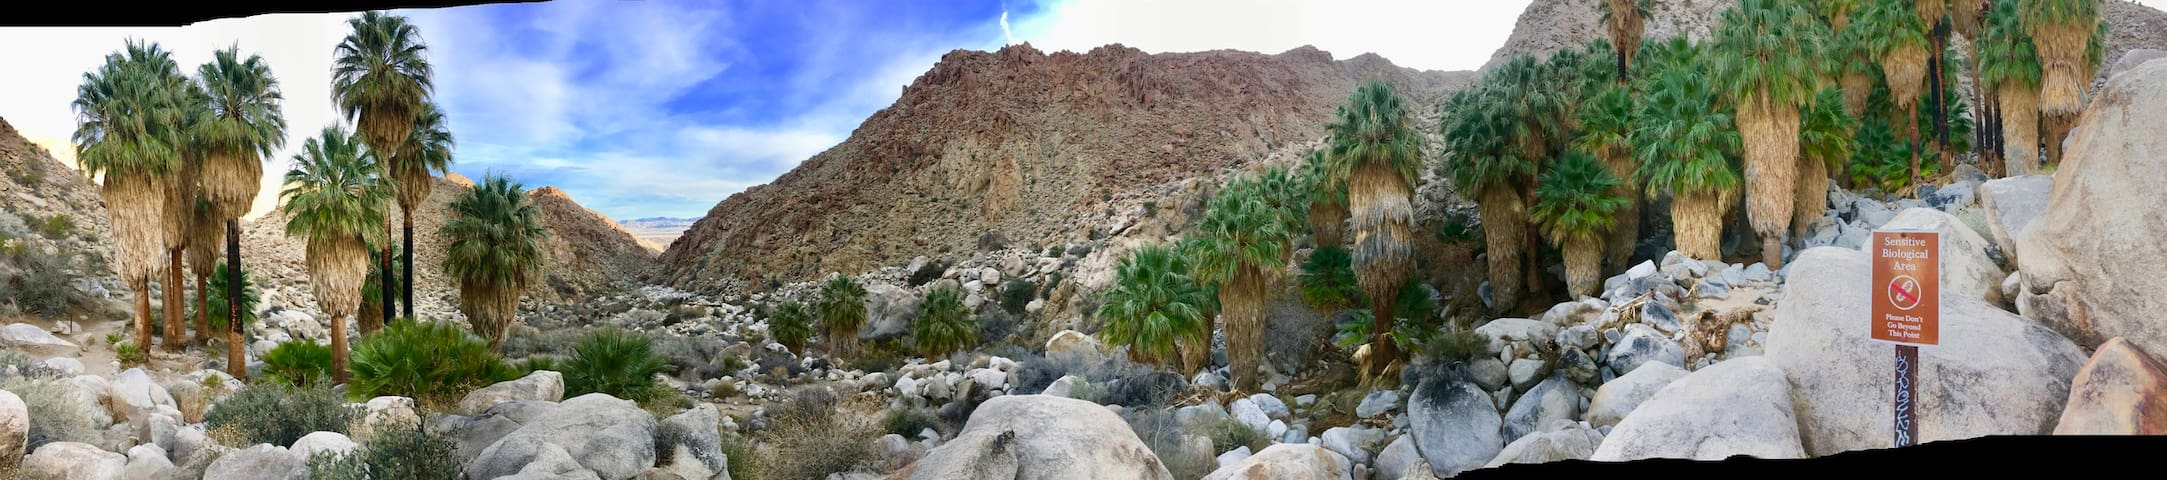 49 Palms Oasis favorite hike